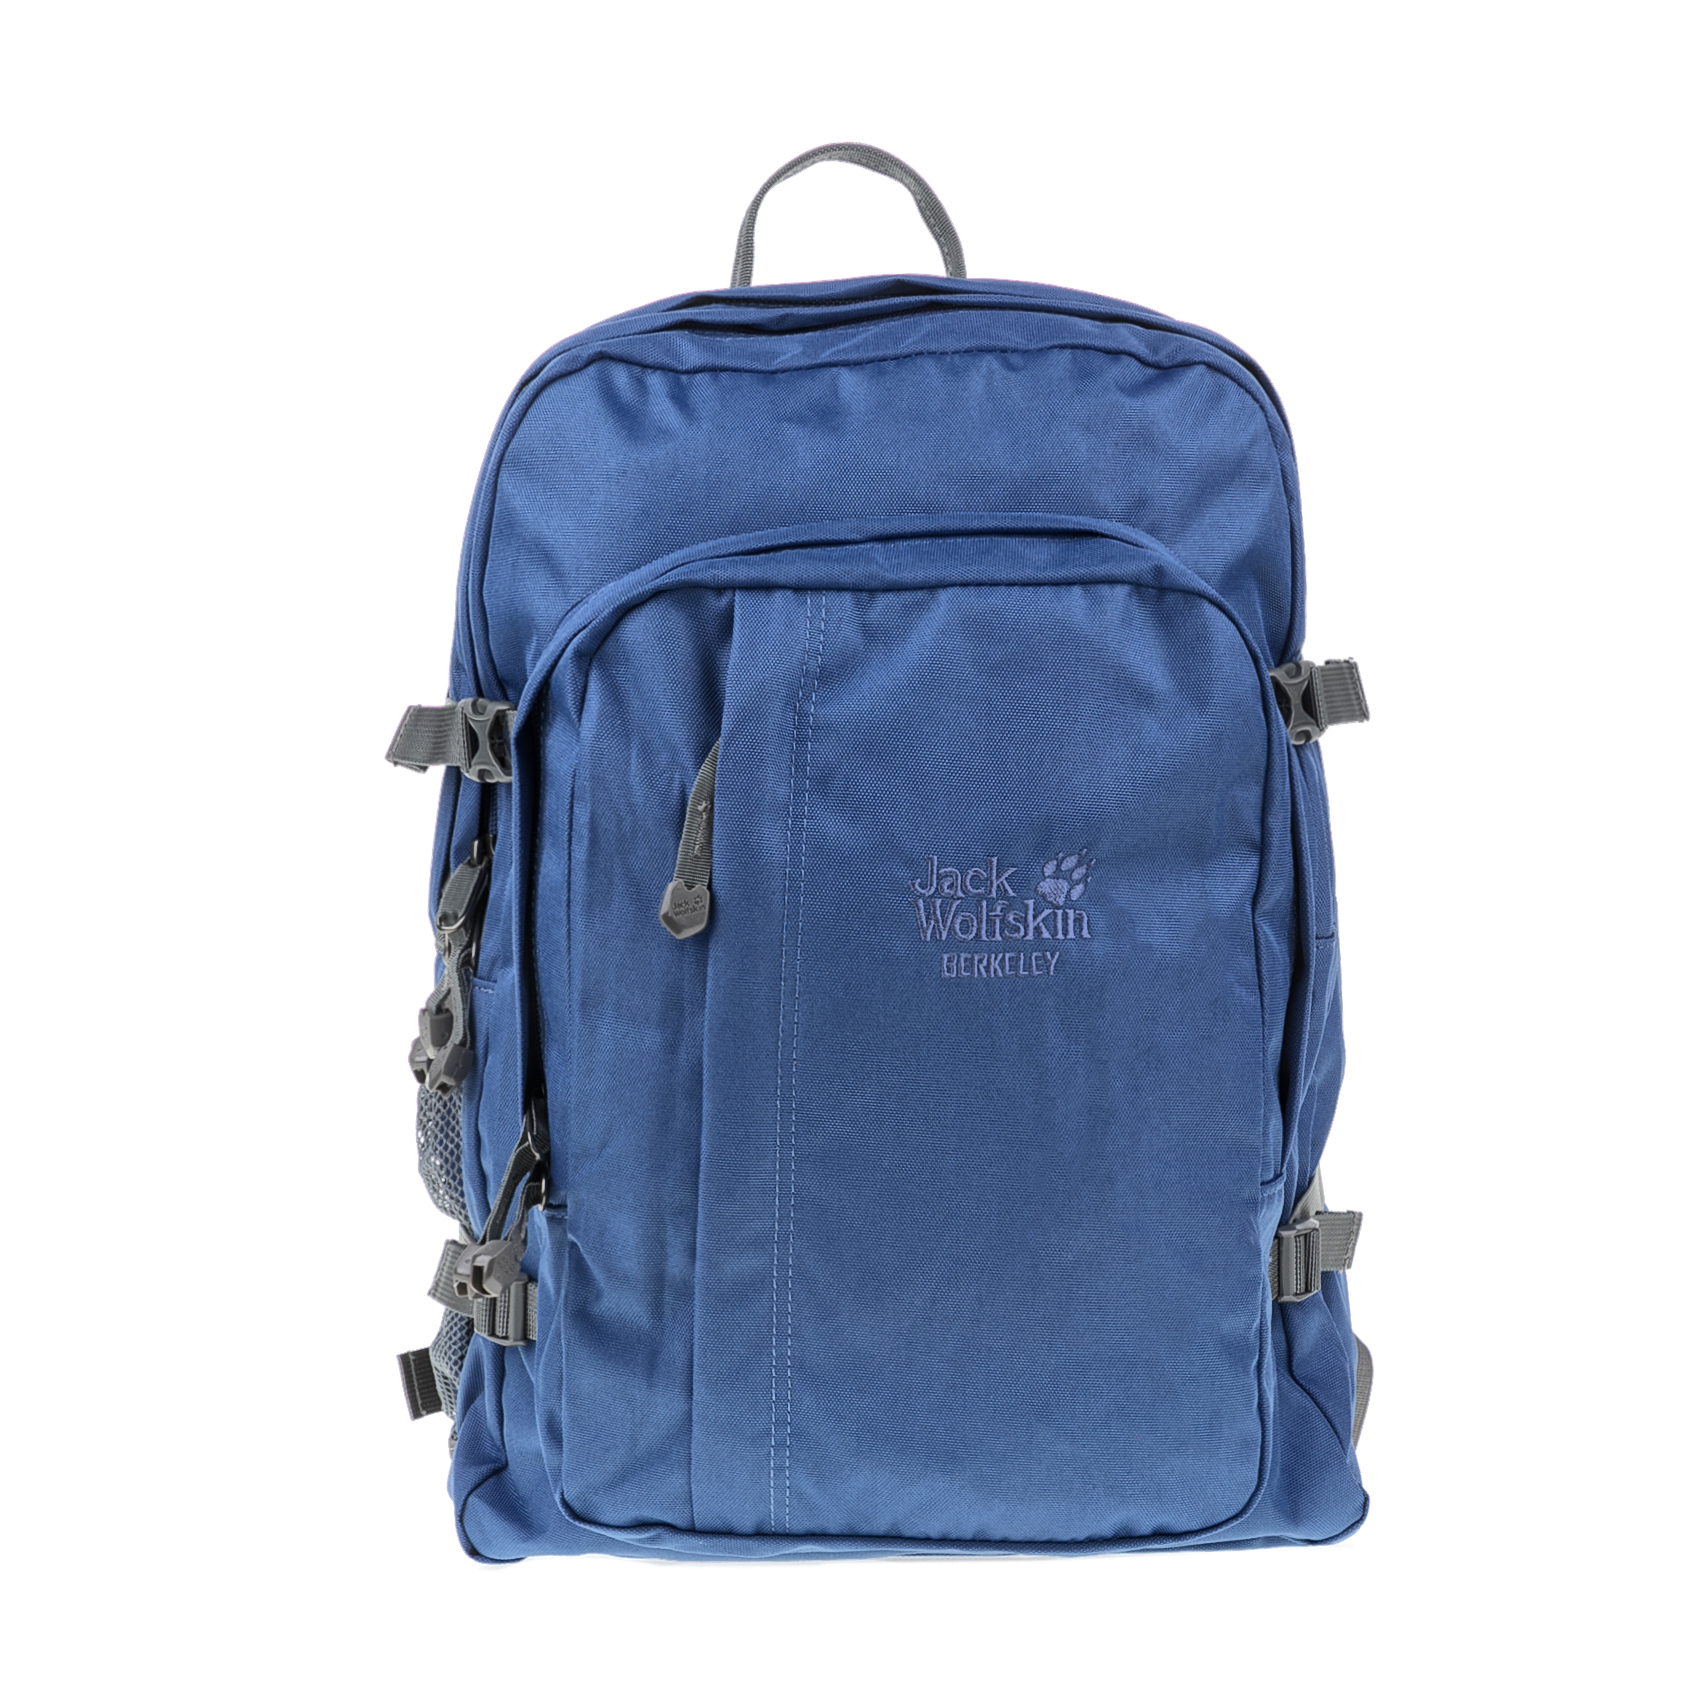 JACK WOLFSKIN – Σακίδιο πλάτης BERKELEY DAYPACK EQUIPMENT JACK WOLFSKIN μπλε 1635932.0-3600